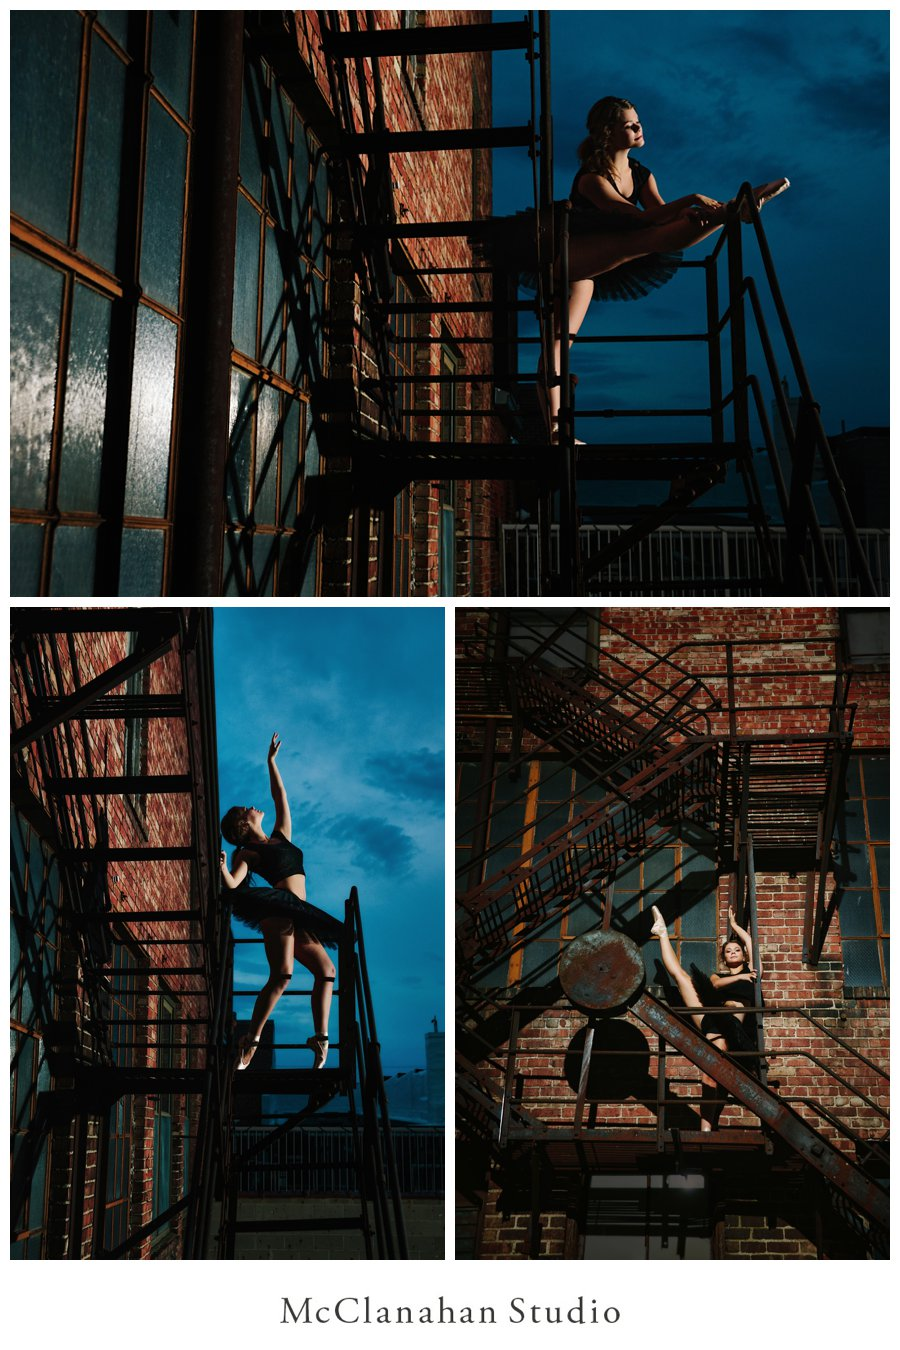 Ballerina Maddie Pals tearing up downtown in epic fashion. Tying point shoes and stretching on a fire escape framed in a dusky sky behind McClanahan Studio.